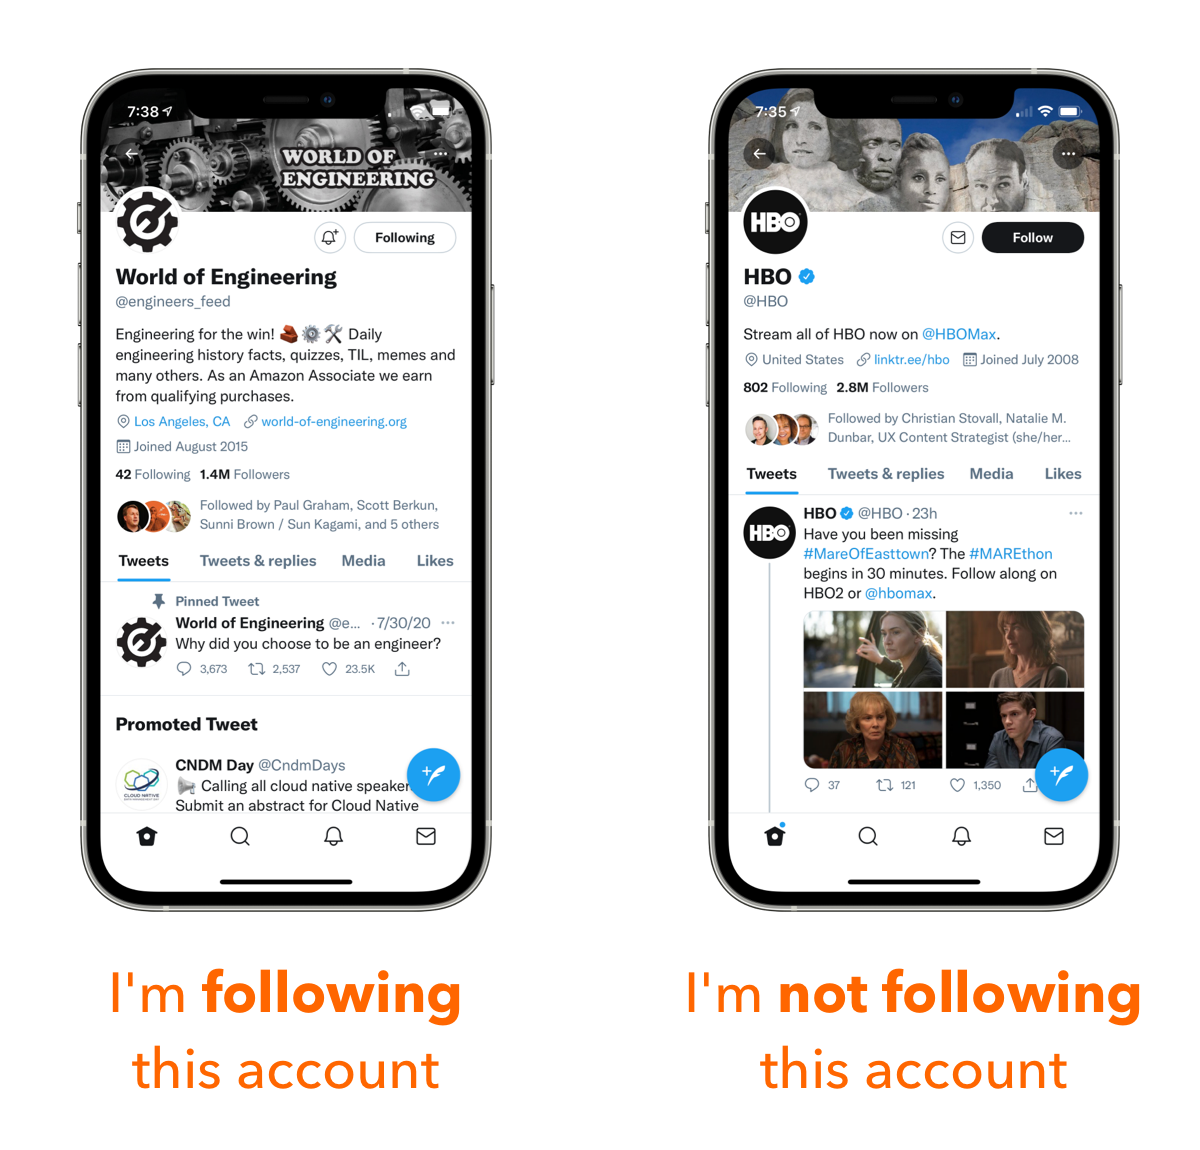 New Twitter UI showing accounts I'm following and not following.